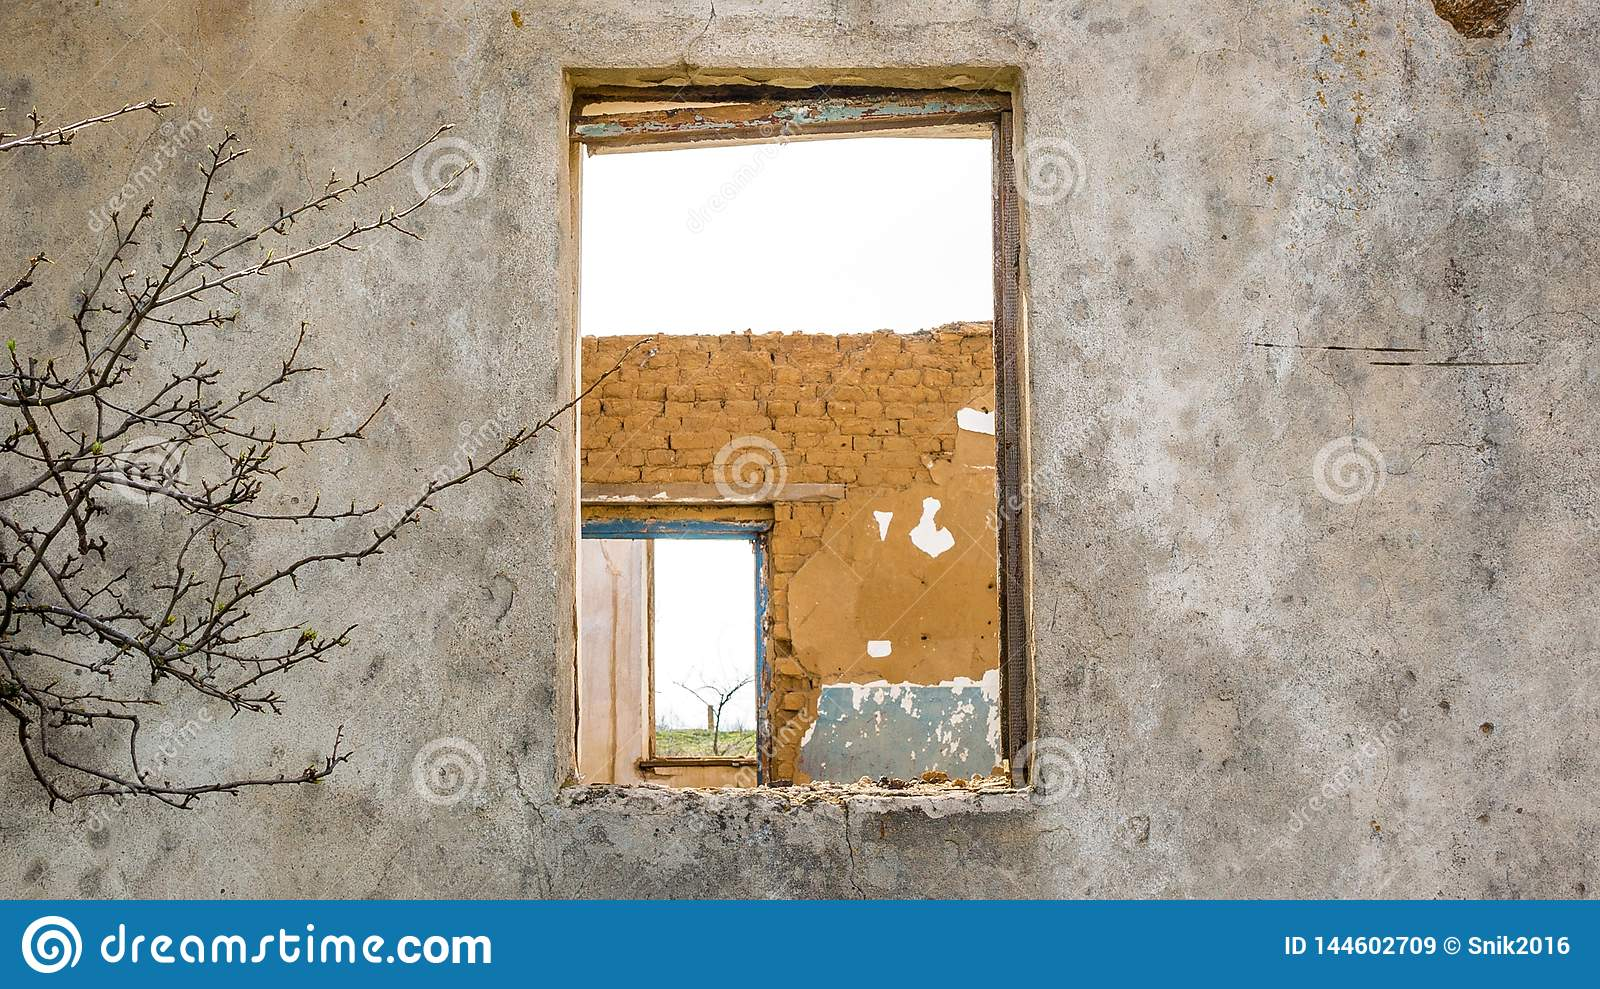 The ruins of an old earthen house without a roof. Holes in the wall at the site of windows and doors